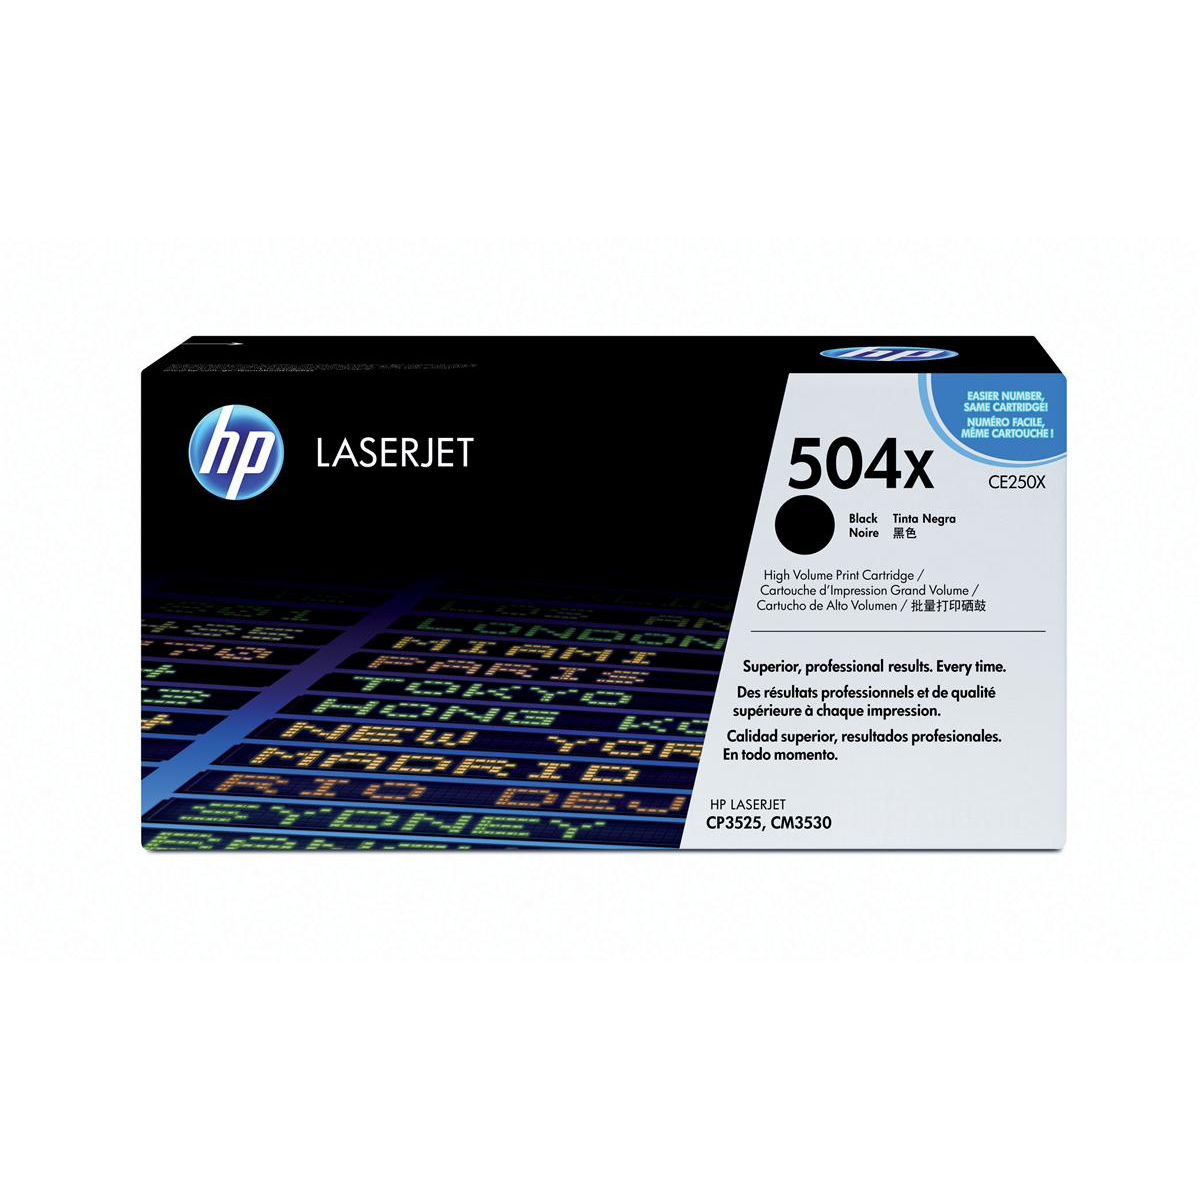 HP 504X Laser Toner Cartridge High Yield Page Life 10,500pp Black Ref CE250X